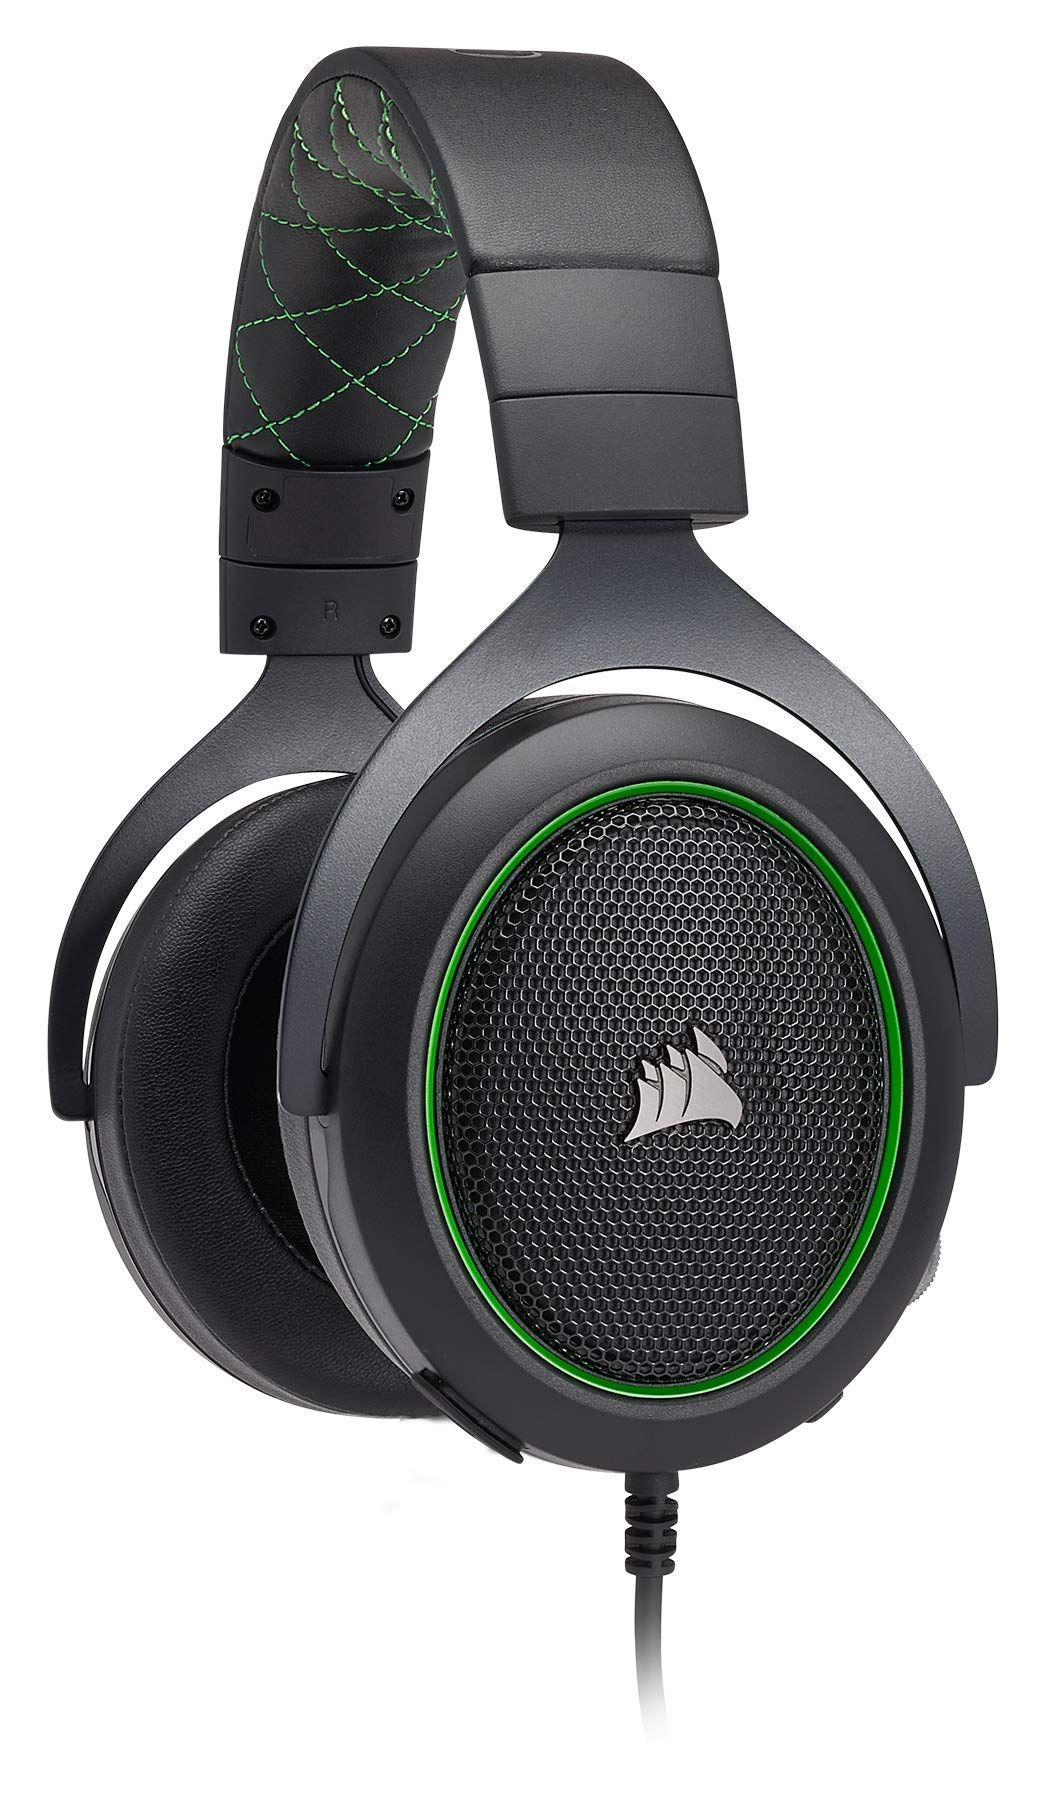 Corsair Hs50 Stereo Gaming Headset Discord Certified Headphones Designed To Work With Xbox One Green Gamin Gaming Headset Headphones Design Headphones